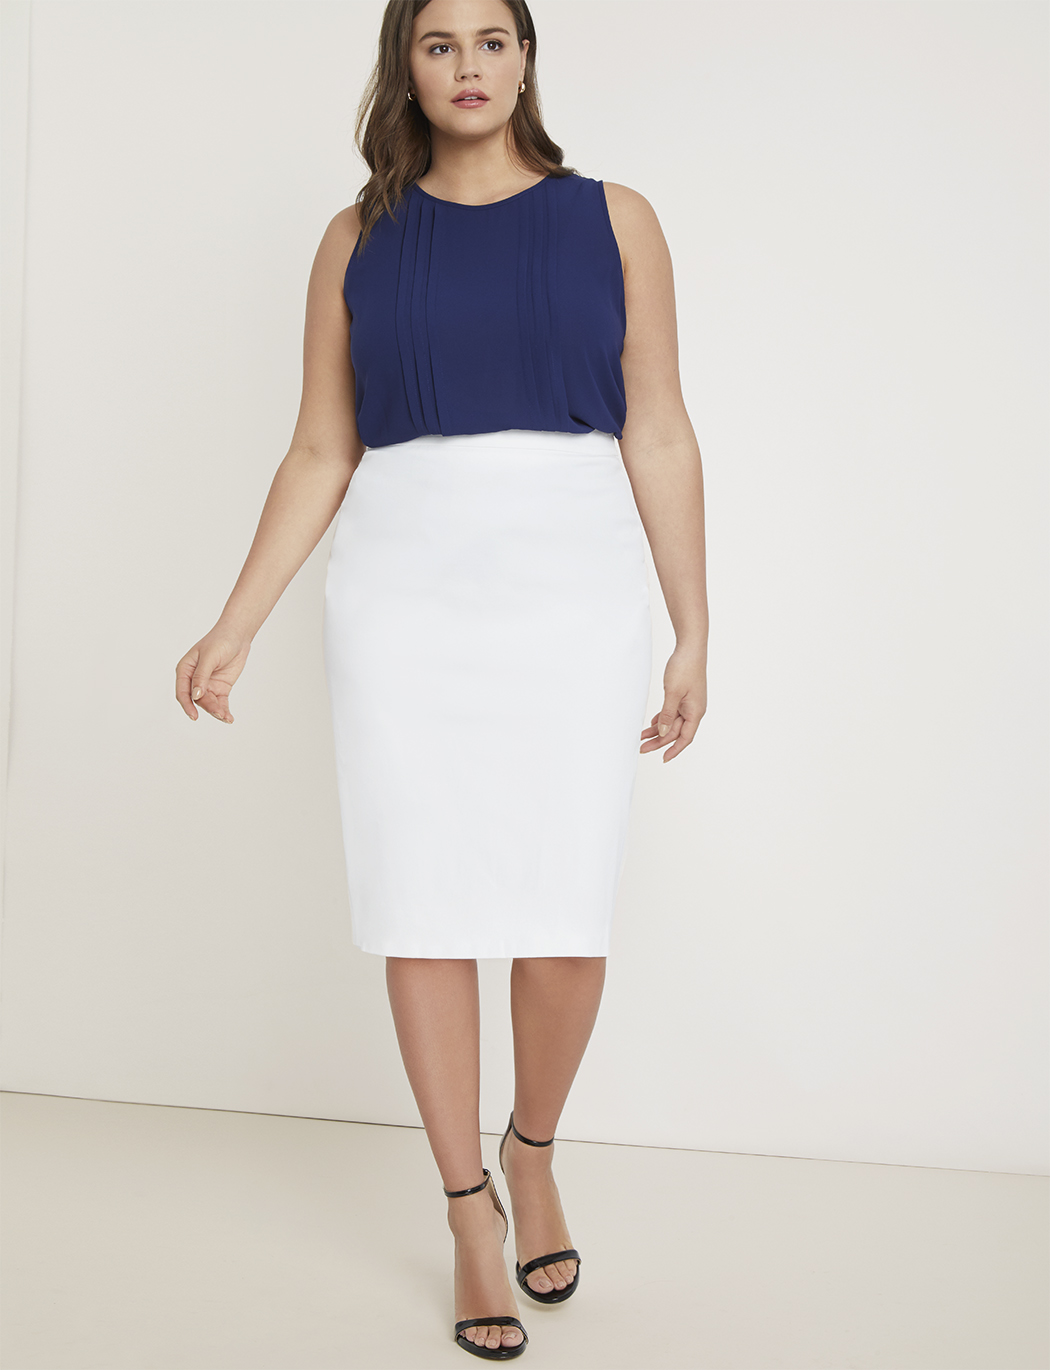 Premier Bi-Stretch Work Skirt